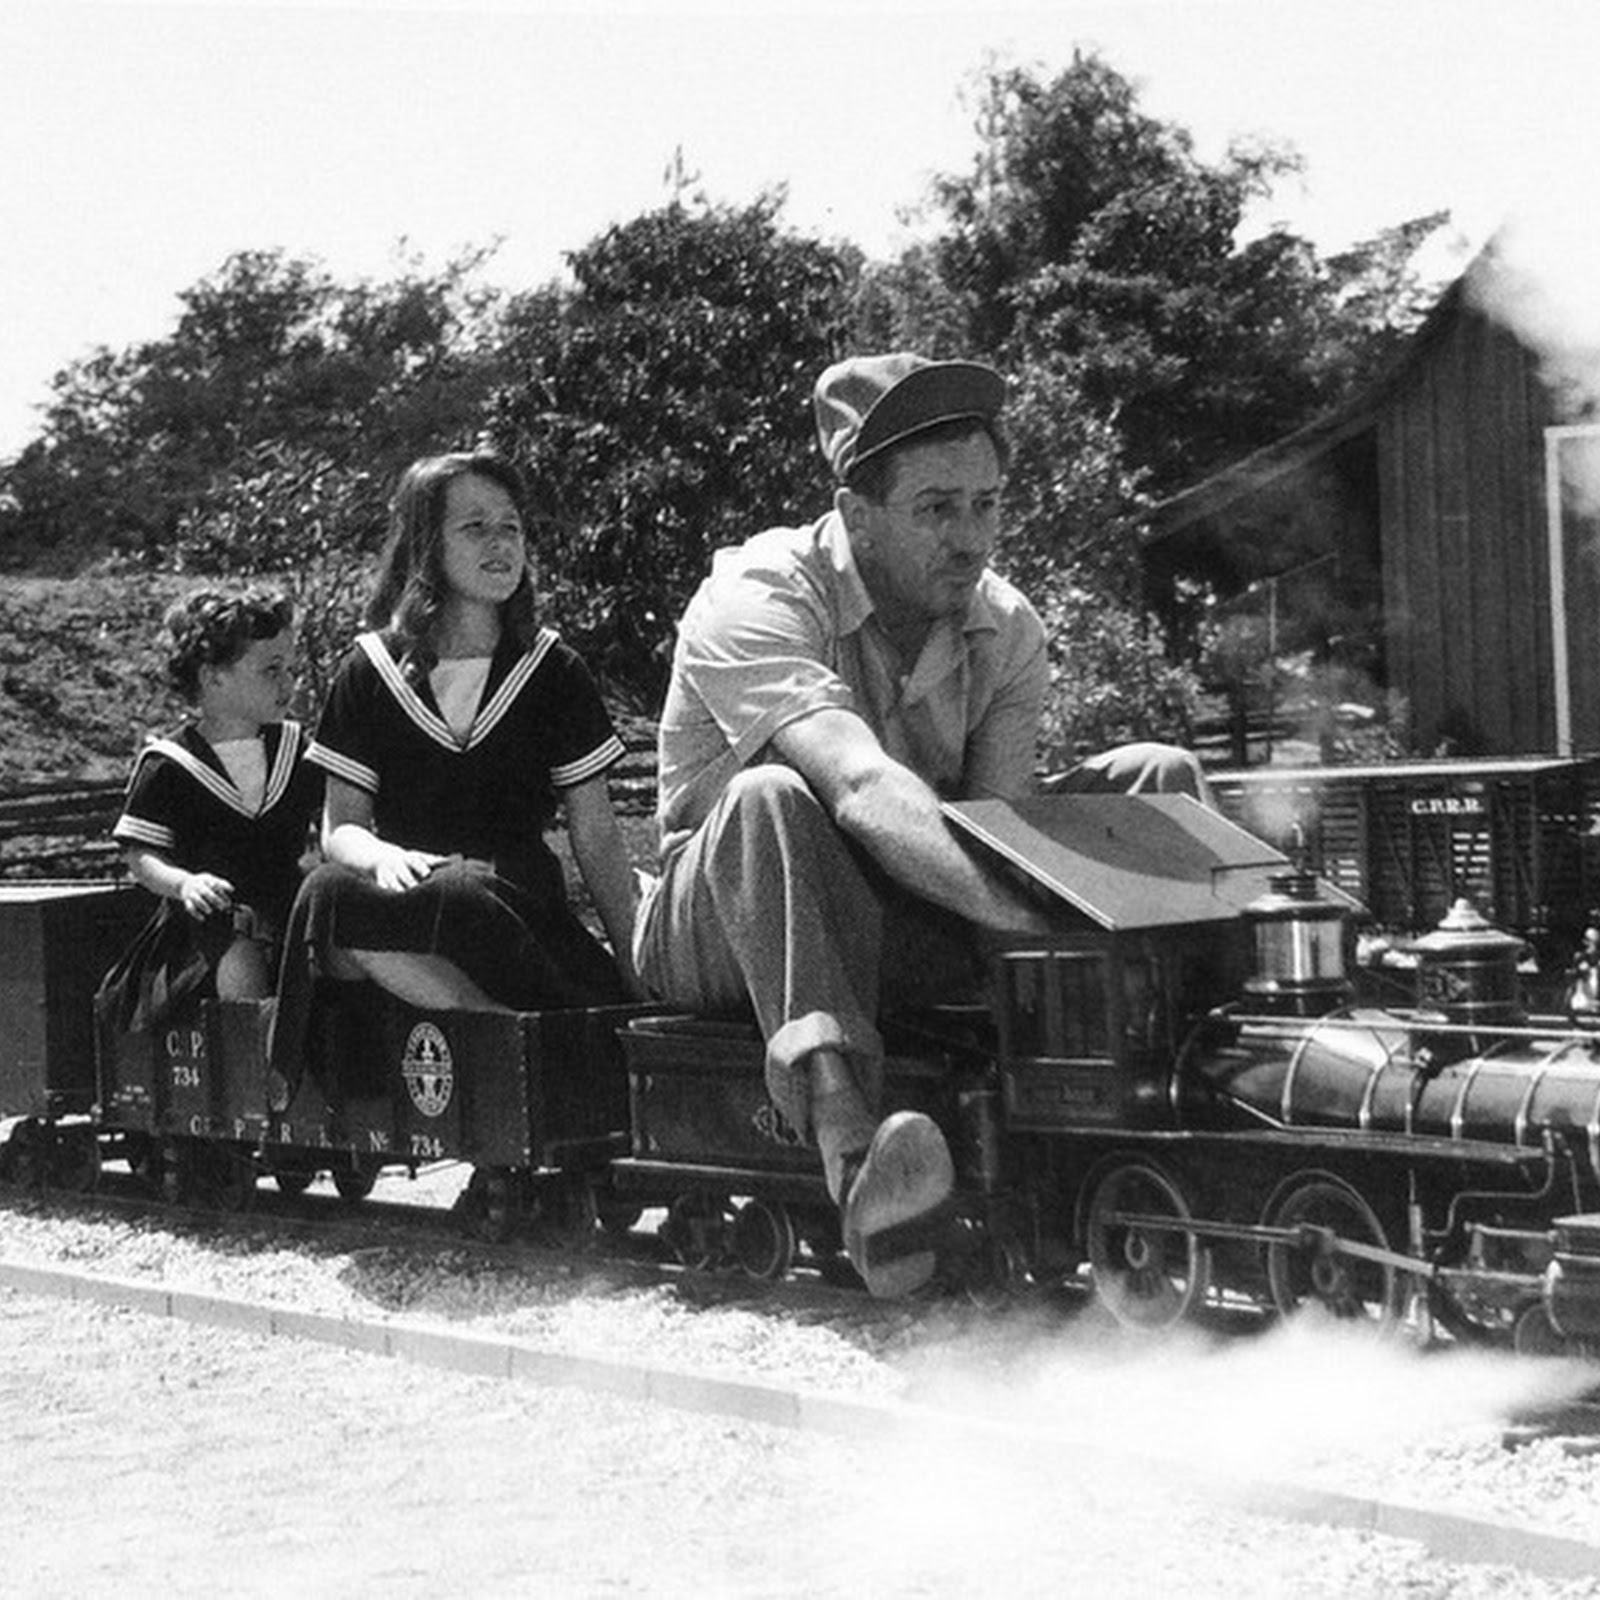 Walt Disney's Backyard Railway: The Carolwood Pacific Railroad